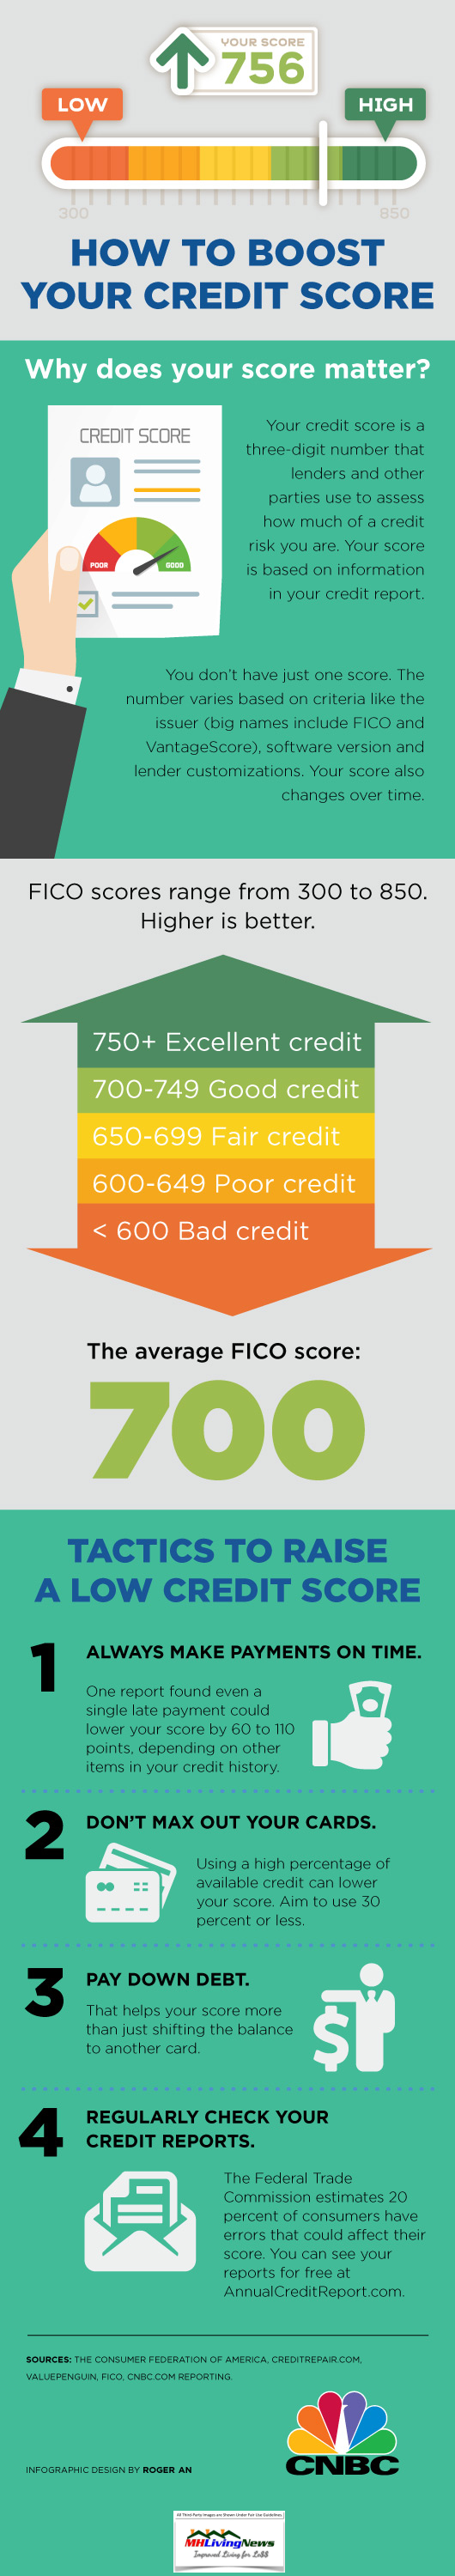 FICOCreditScoreINfographicCNBCManufacturedHomeLivingNewsWhatToDoIMproveYourcreditScore